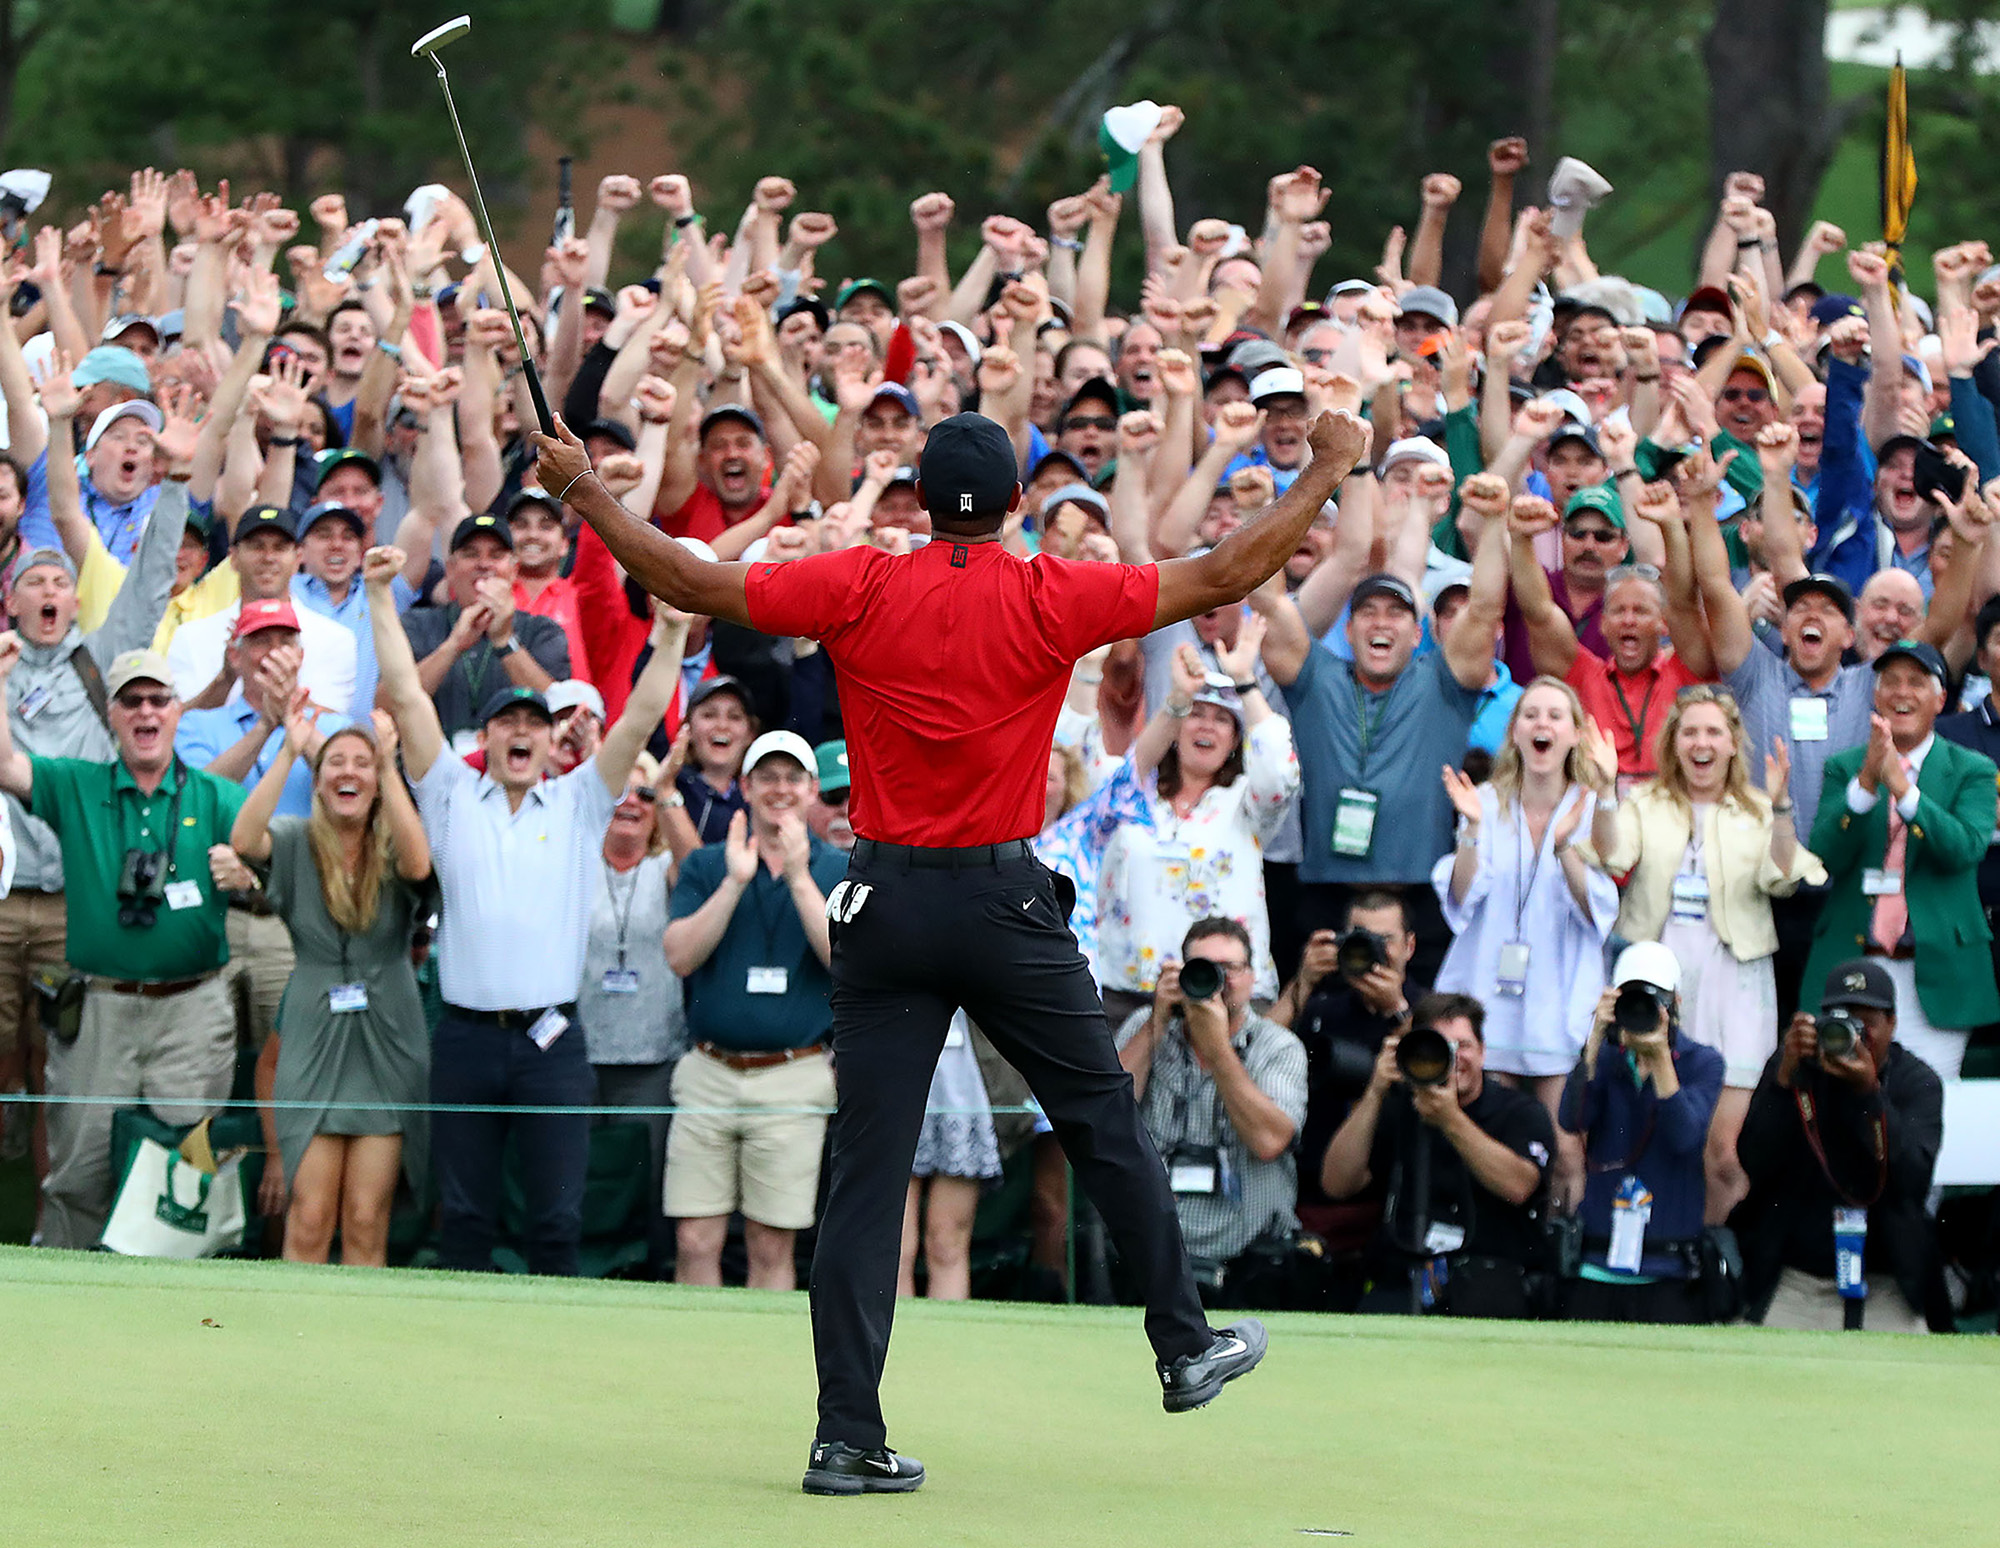 Golf - Masters Augusta - Le triomphe de Tiger Woods, champion hors normes